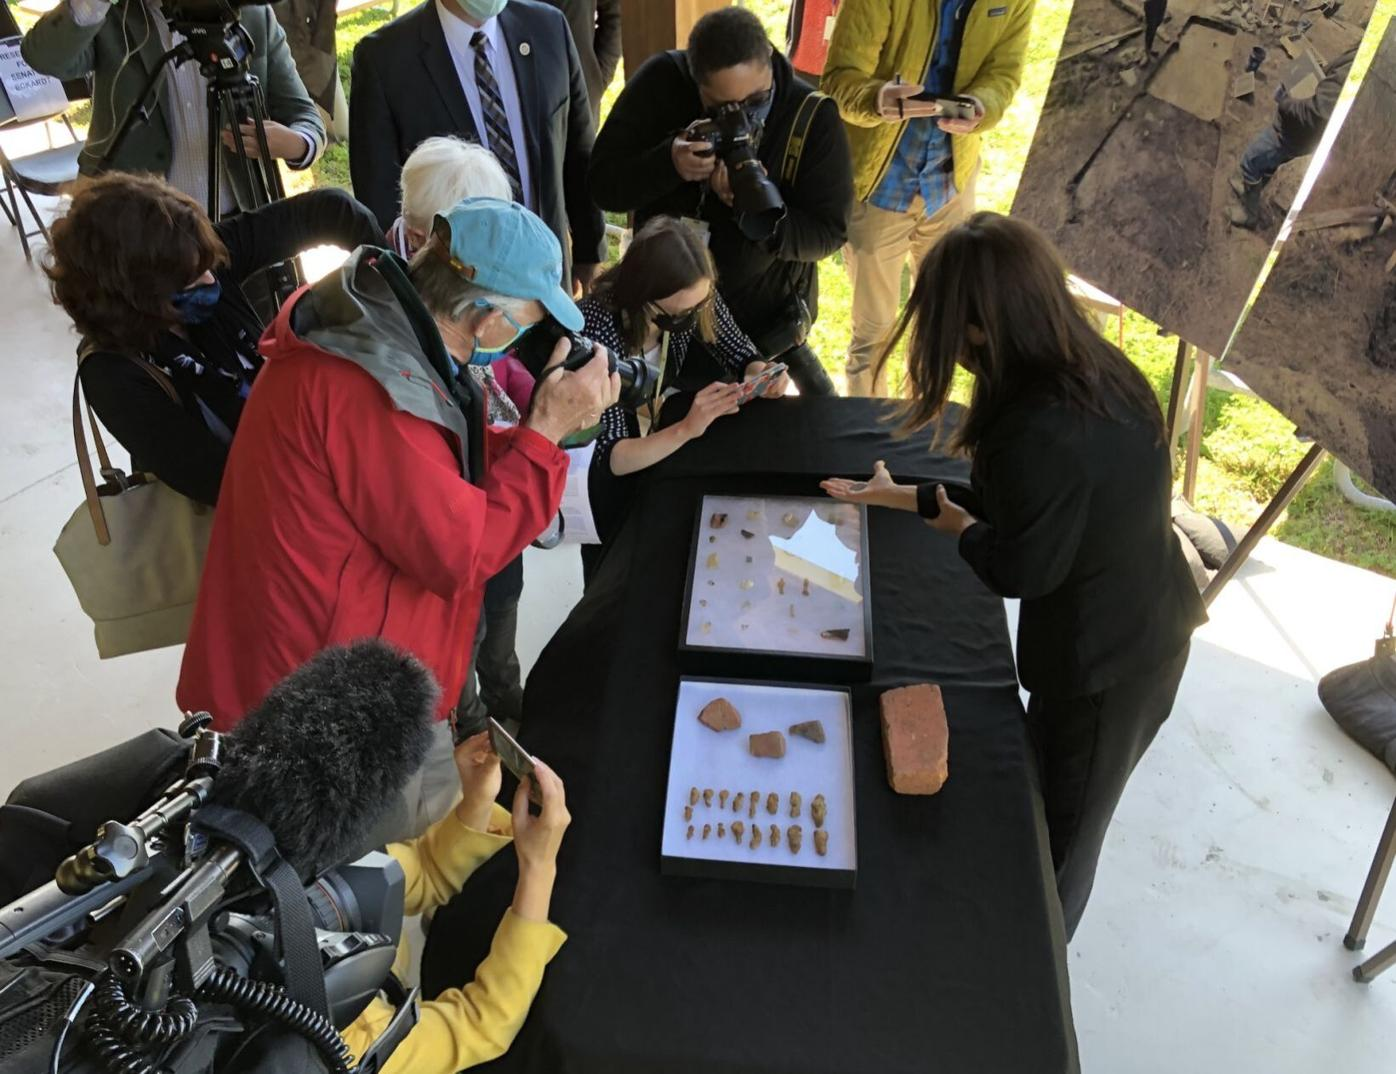 Archaeologist Dr. Julie Schablitsky shows a coin to media members